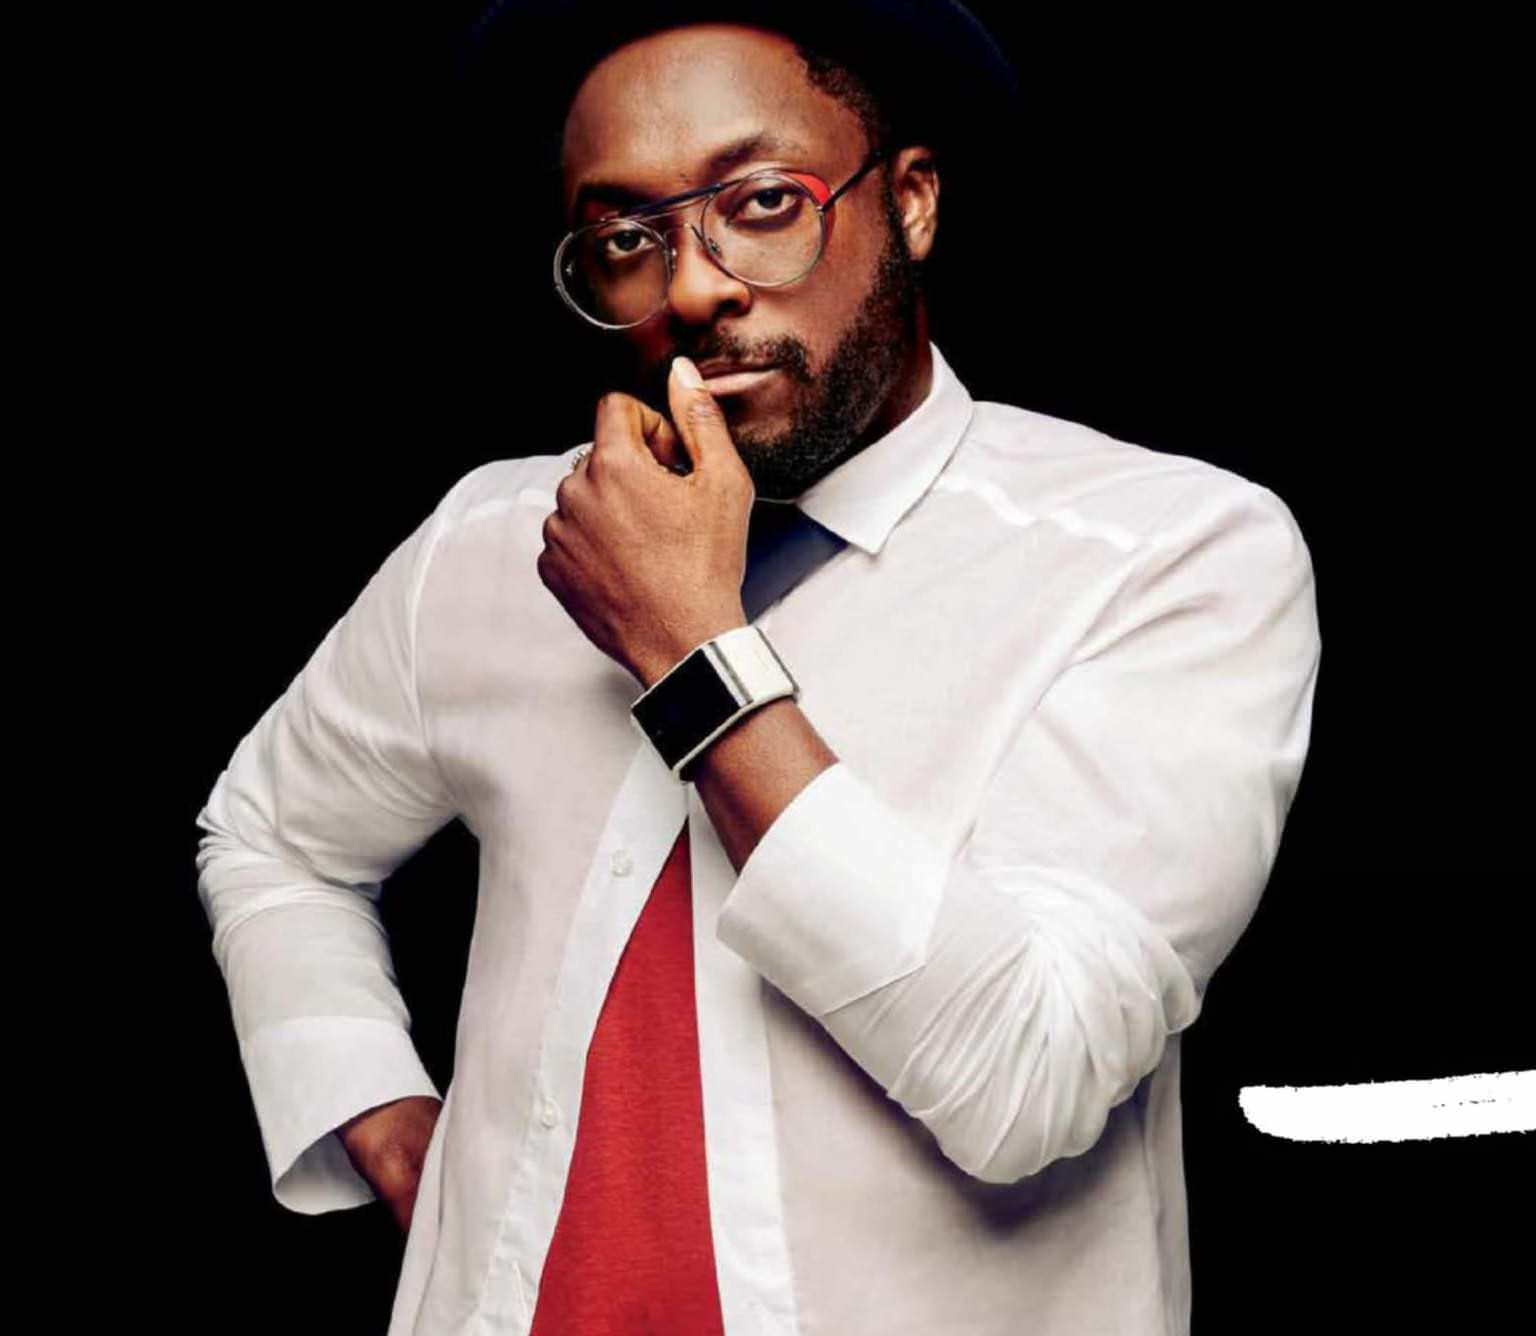 Inside The Creative Mind Of Will.i.am